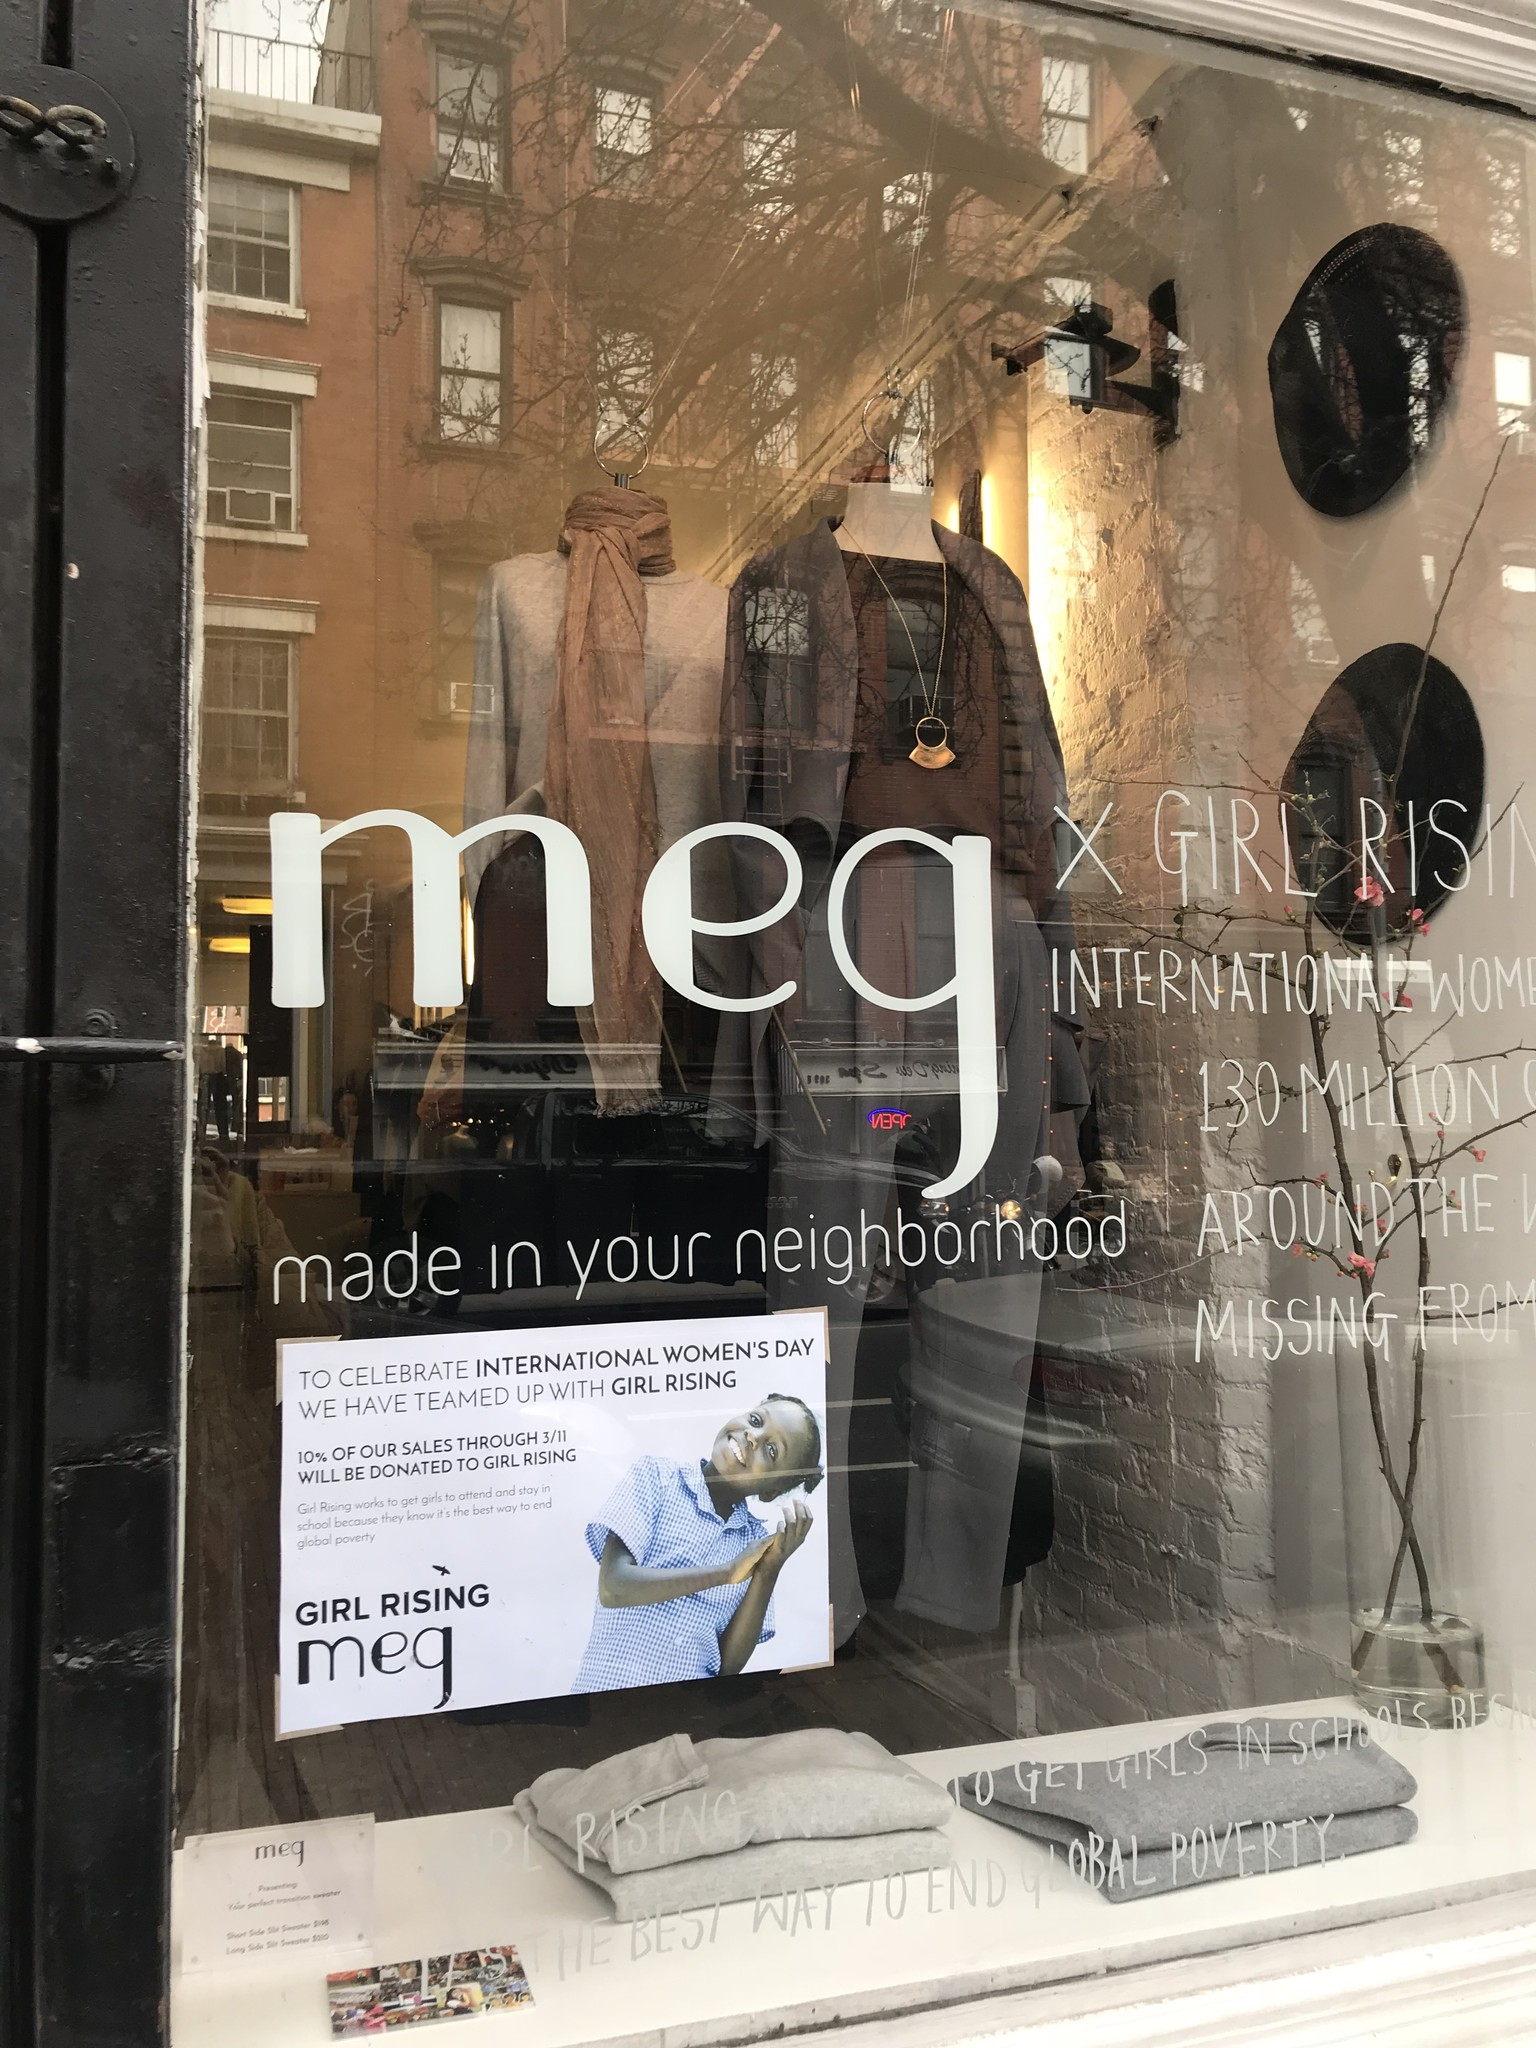 East Village Meg with Girl Rising Window Display